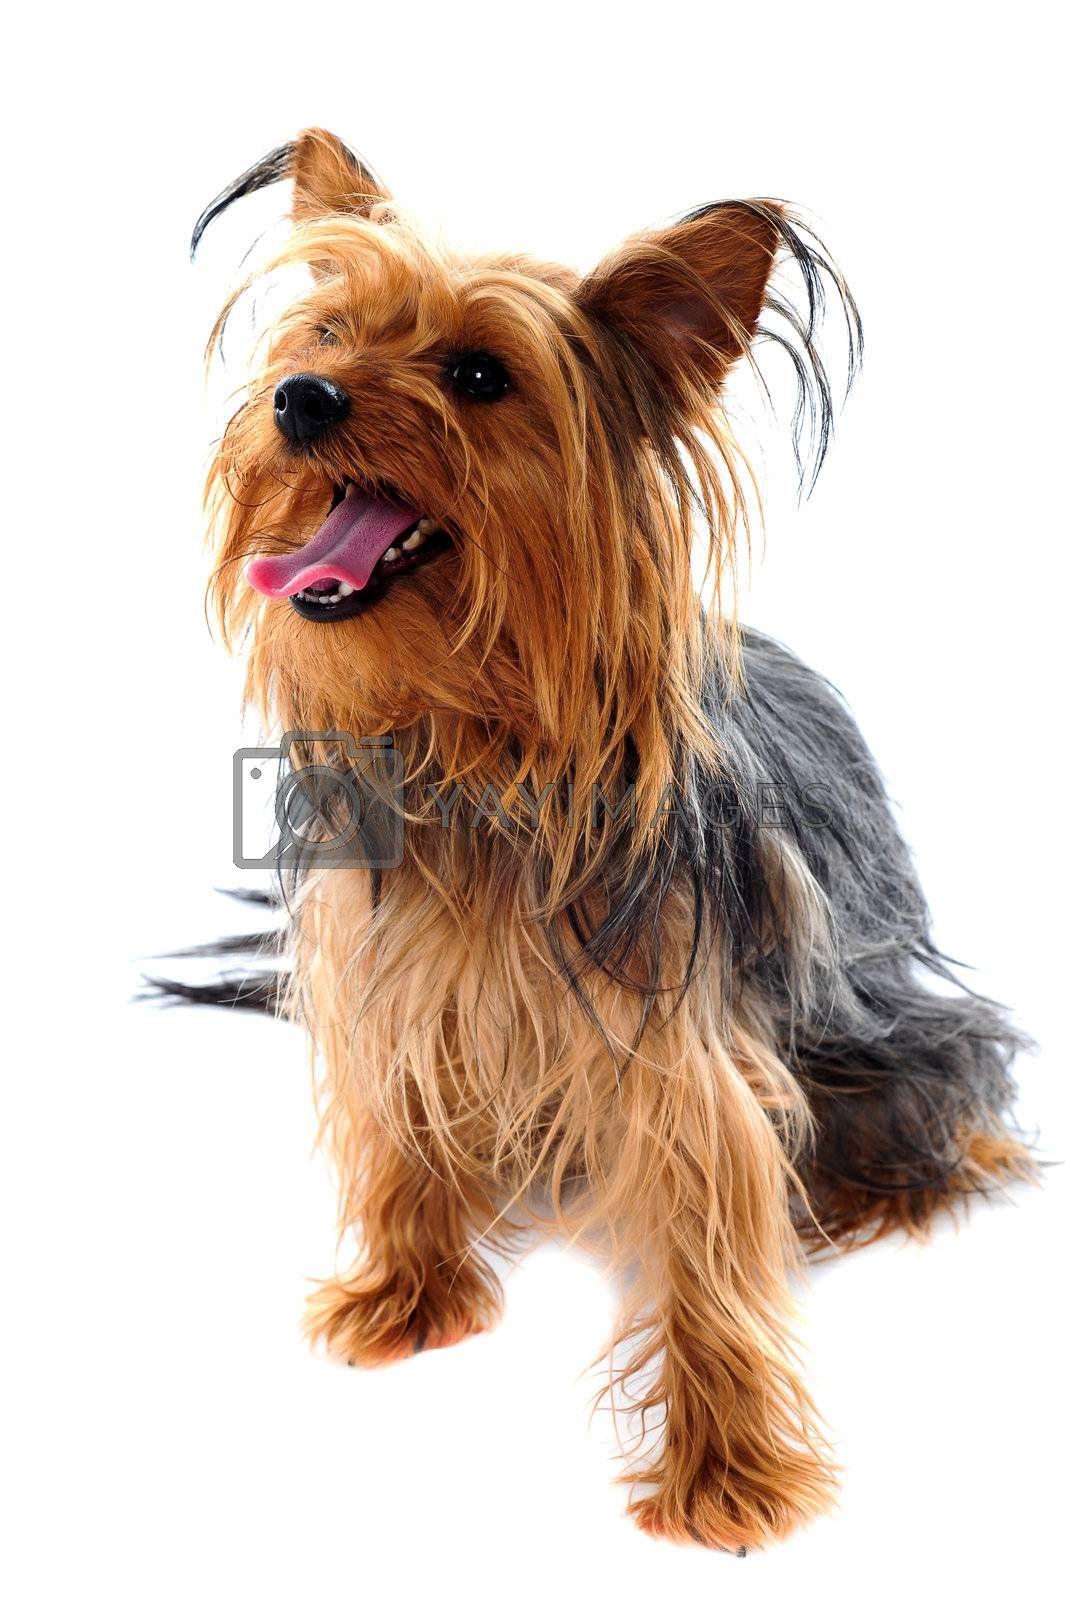 Yorkshire terrier looking away against white background